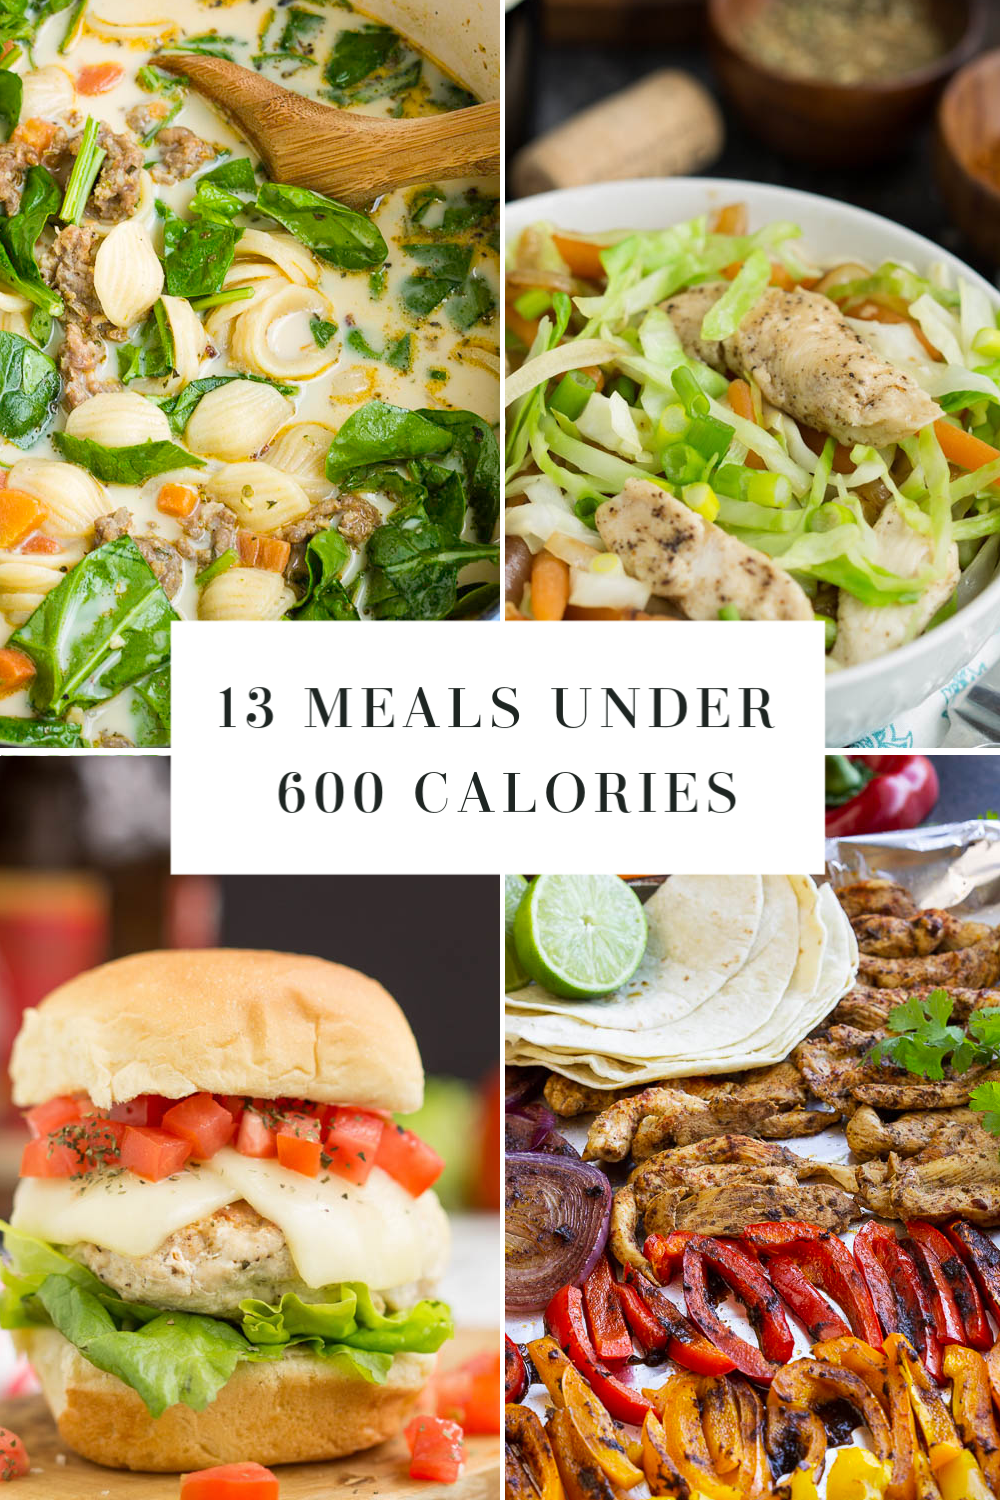 Meals under 600 Calories, is a collection of recipes for those cutting back on calories. These healthy meals make meal planning a breeze! #lowcal #lowcalorie #dinners #mealplan #mealprep #recipes